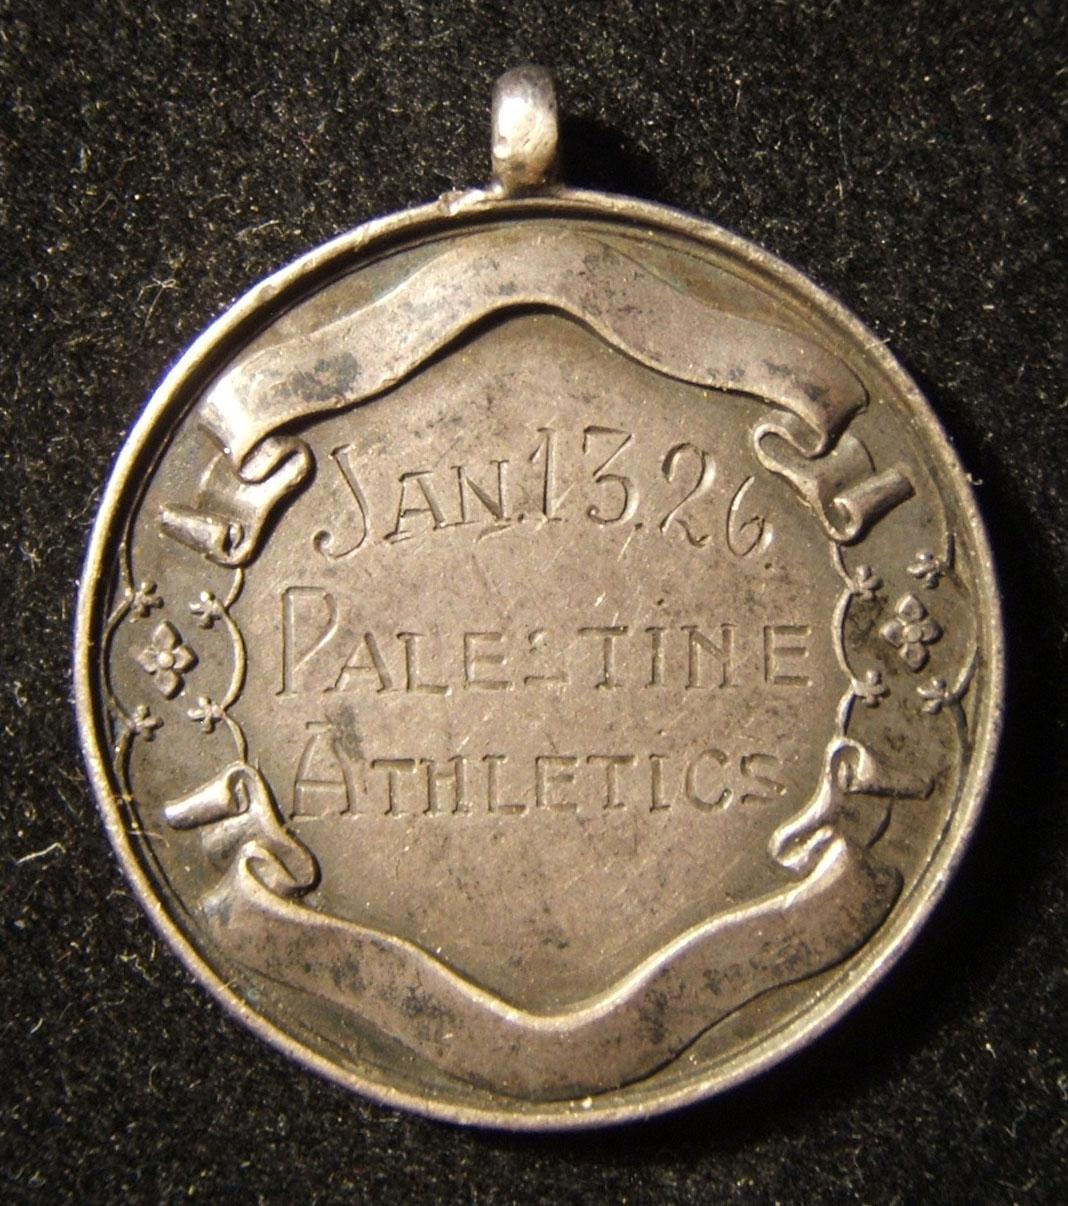 'Palestine Athletics' silver medal for walking race, 1926, by Dingley (UK)